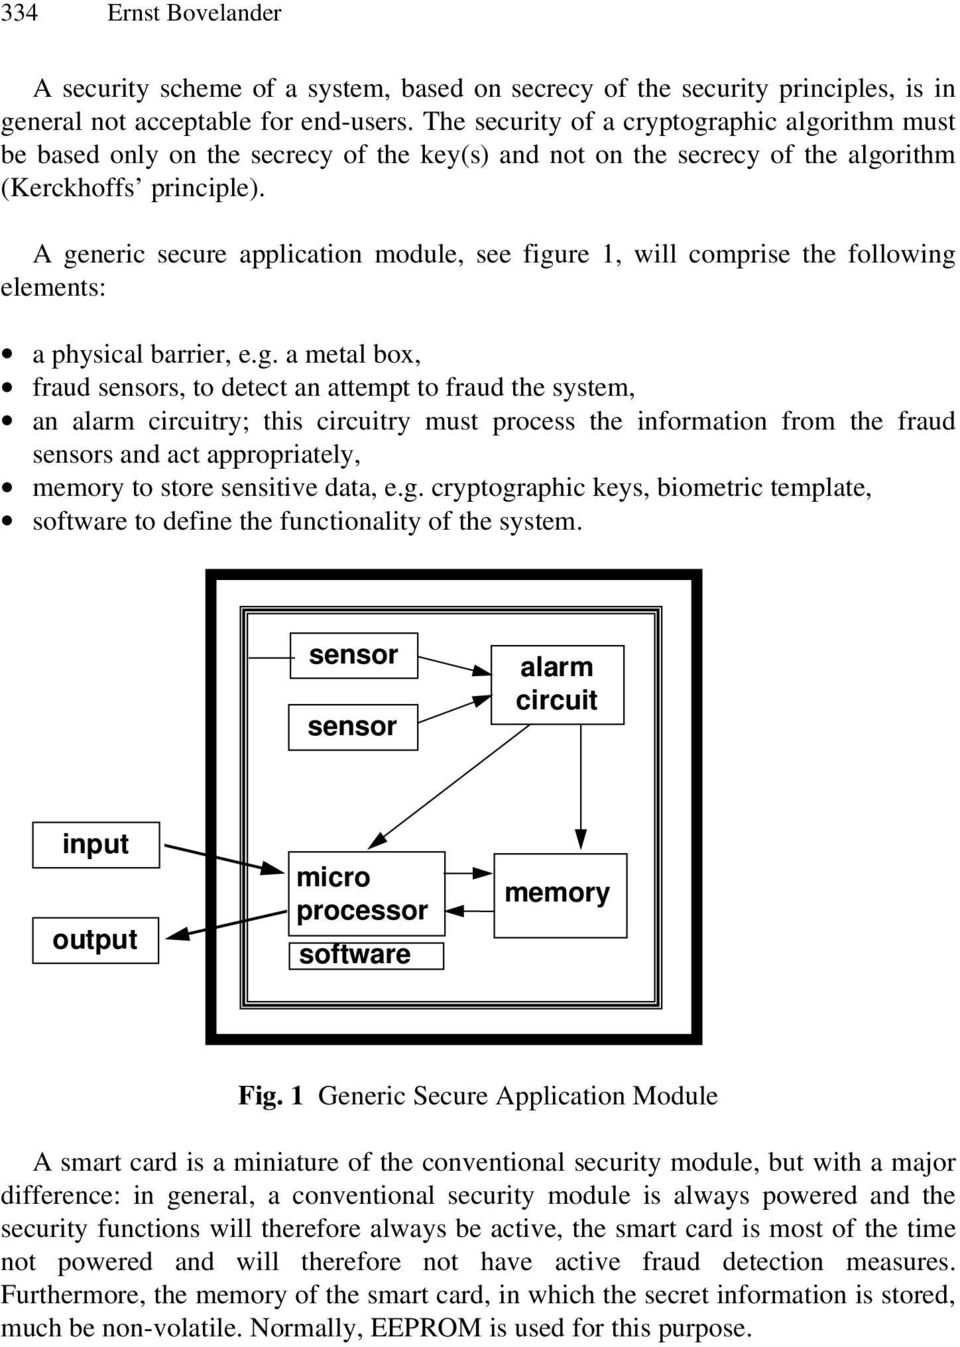 A generic secure application module, see figure 1, will comprise the following elements: a physical barrier, e.g. a metal box, fraud sensors, to detect an attempt to fraud the system, an alarm